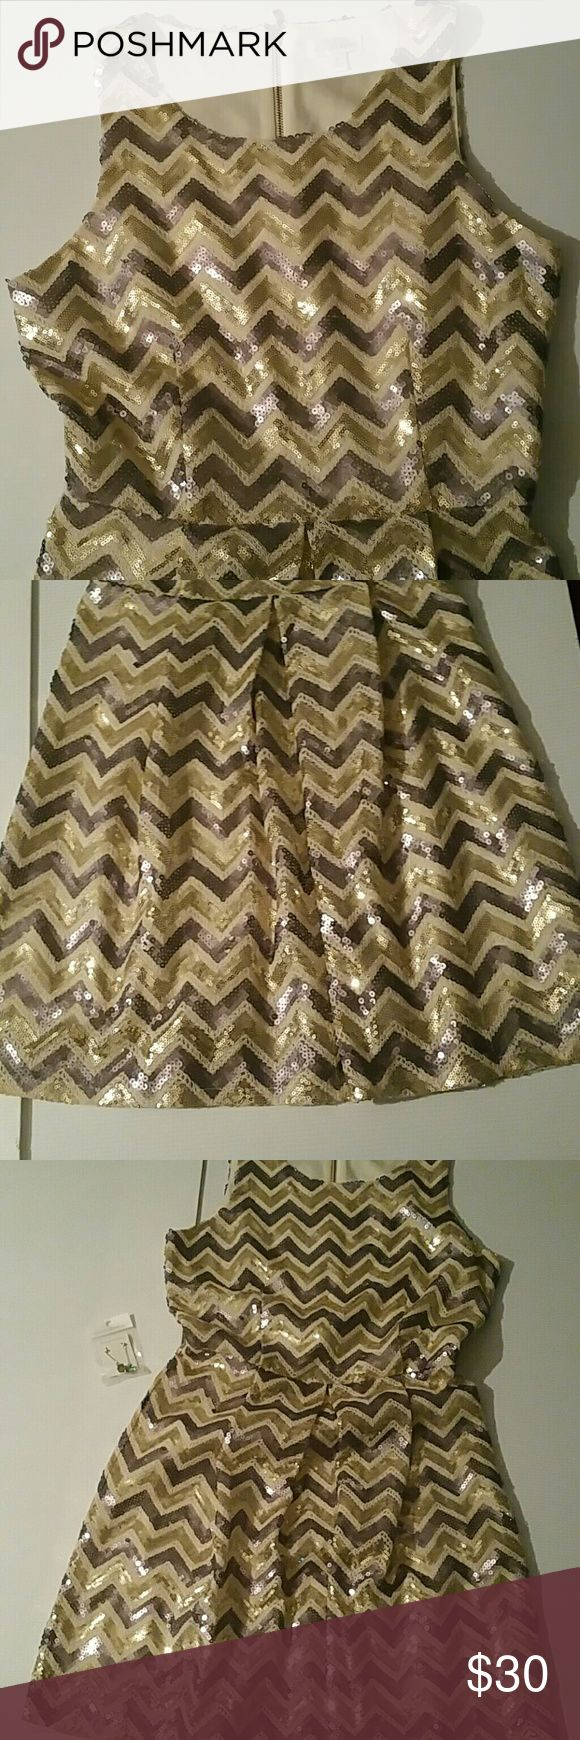 Beautiful sequin dress Beautiful gold, silver and gray sequin dress, zig zag pattern, zippered back enclosure, size S. Charming Charlie Dresses Mini